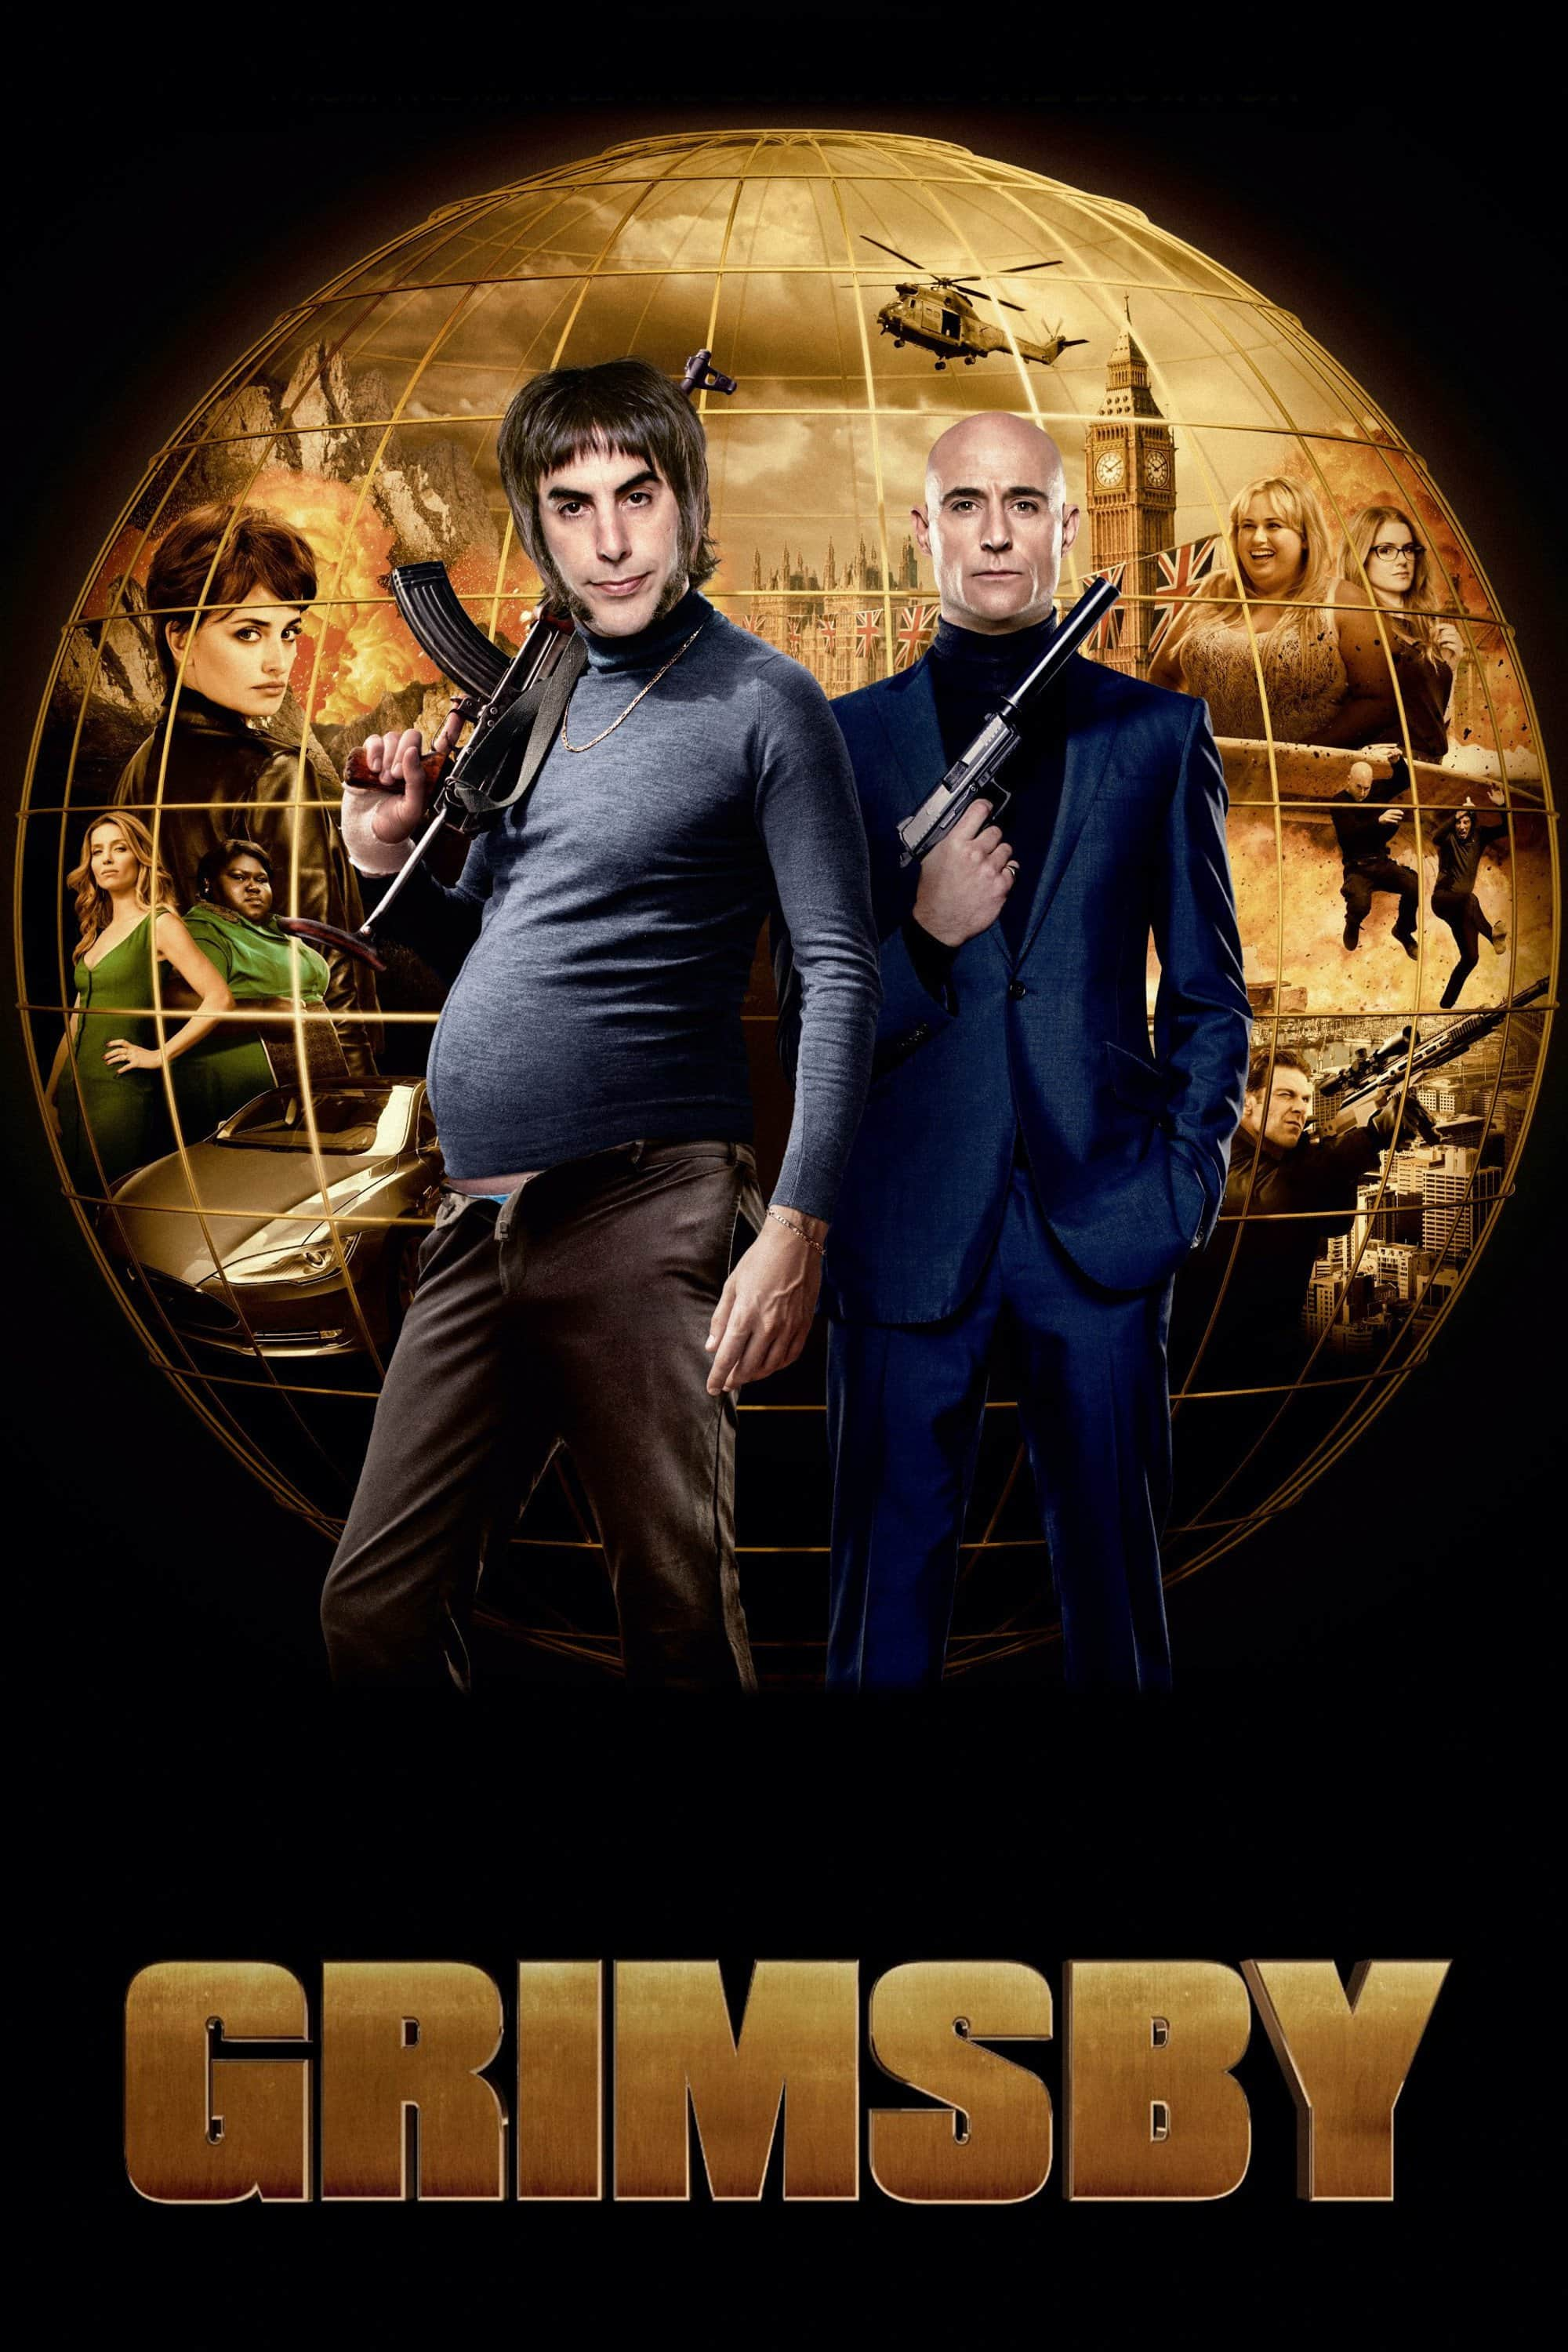 The Brothers Grimsby, 2016